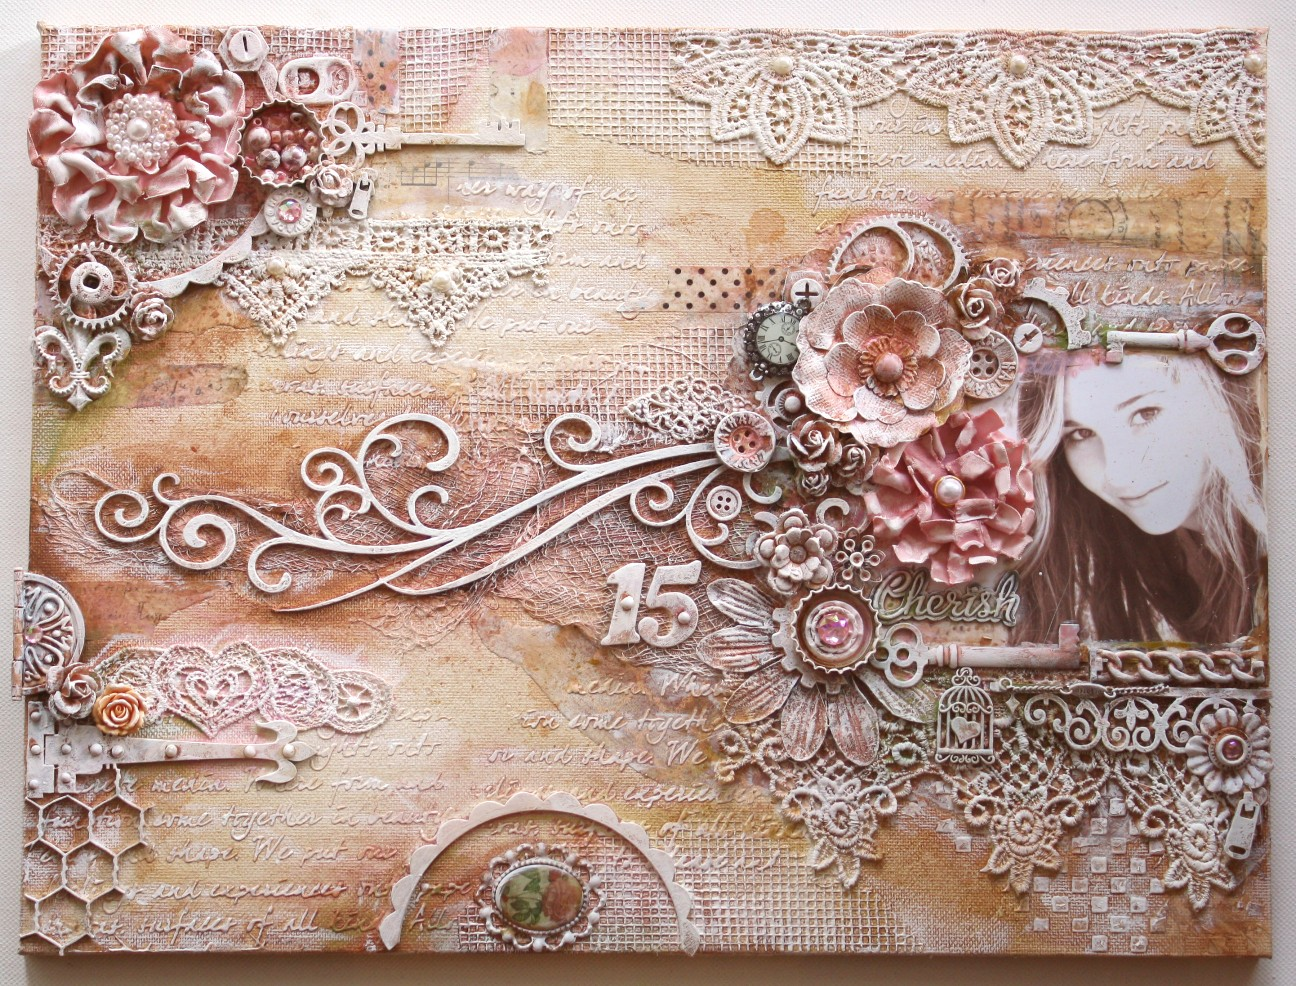 mod podge photo collage ideas - Such a Pretty Mess A NEW Mixed Media Tutorial Video